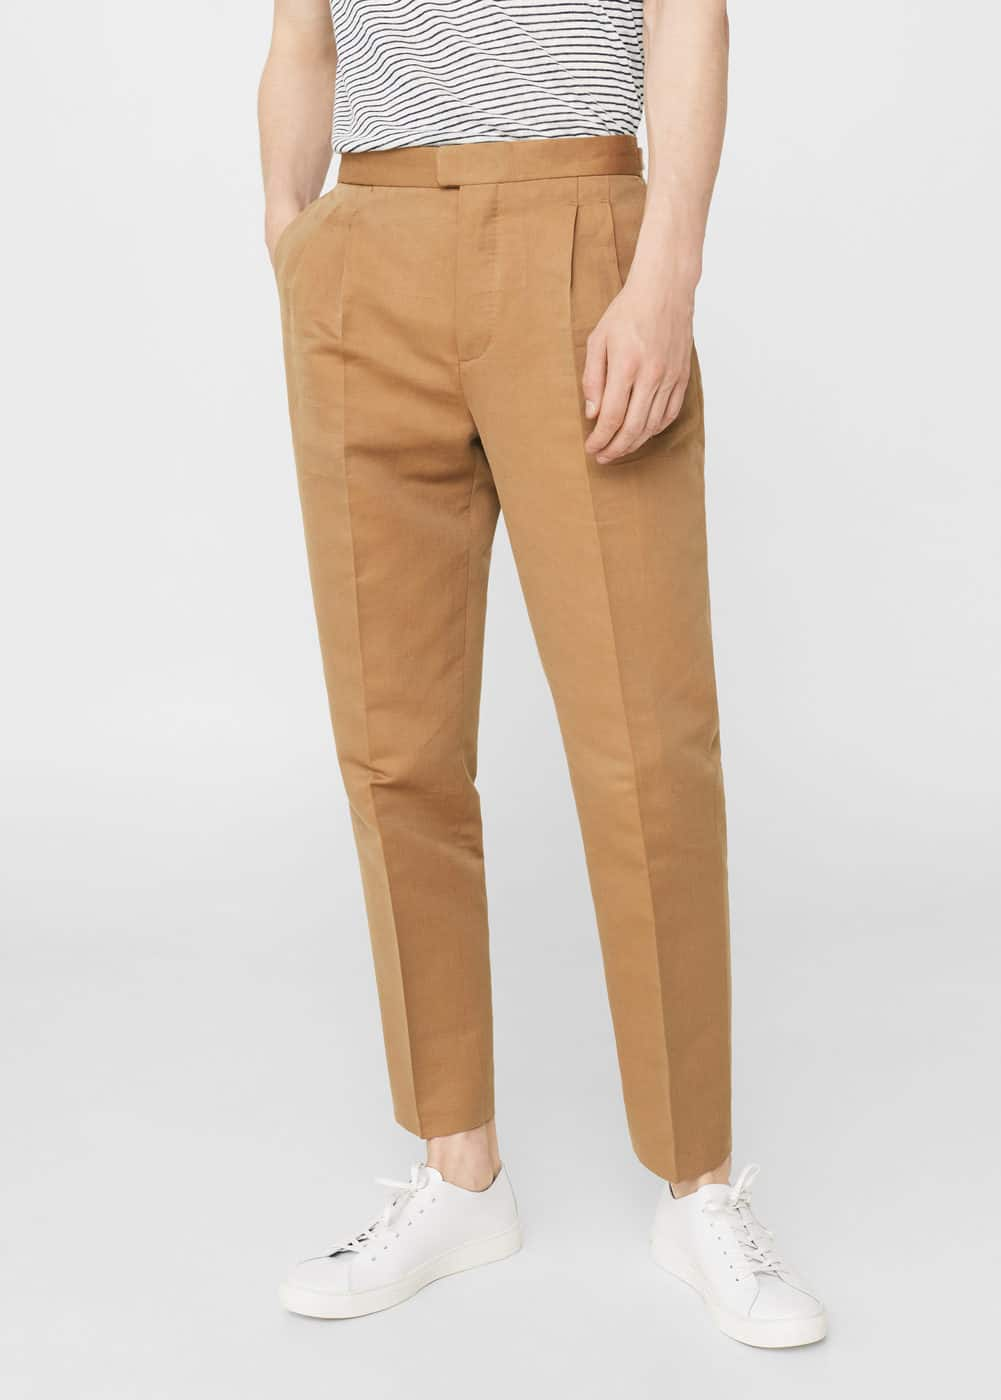 Pantalon regular-fit coton et lin | MANGO